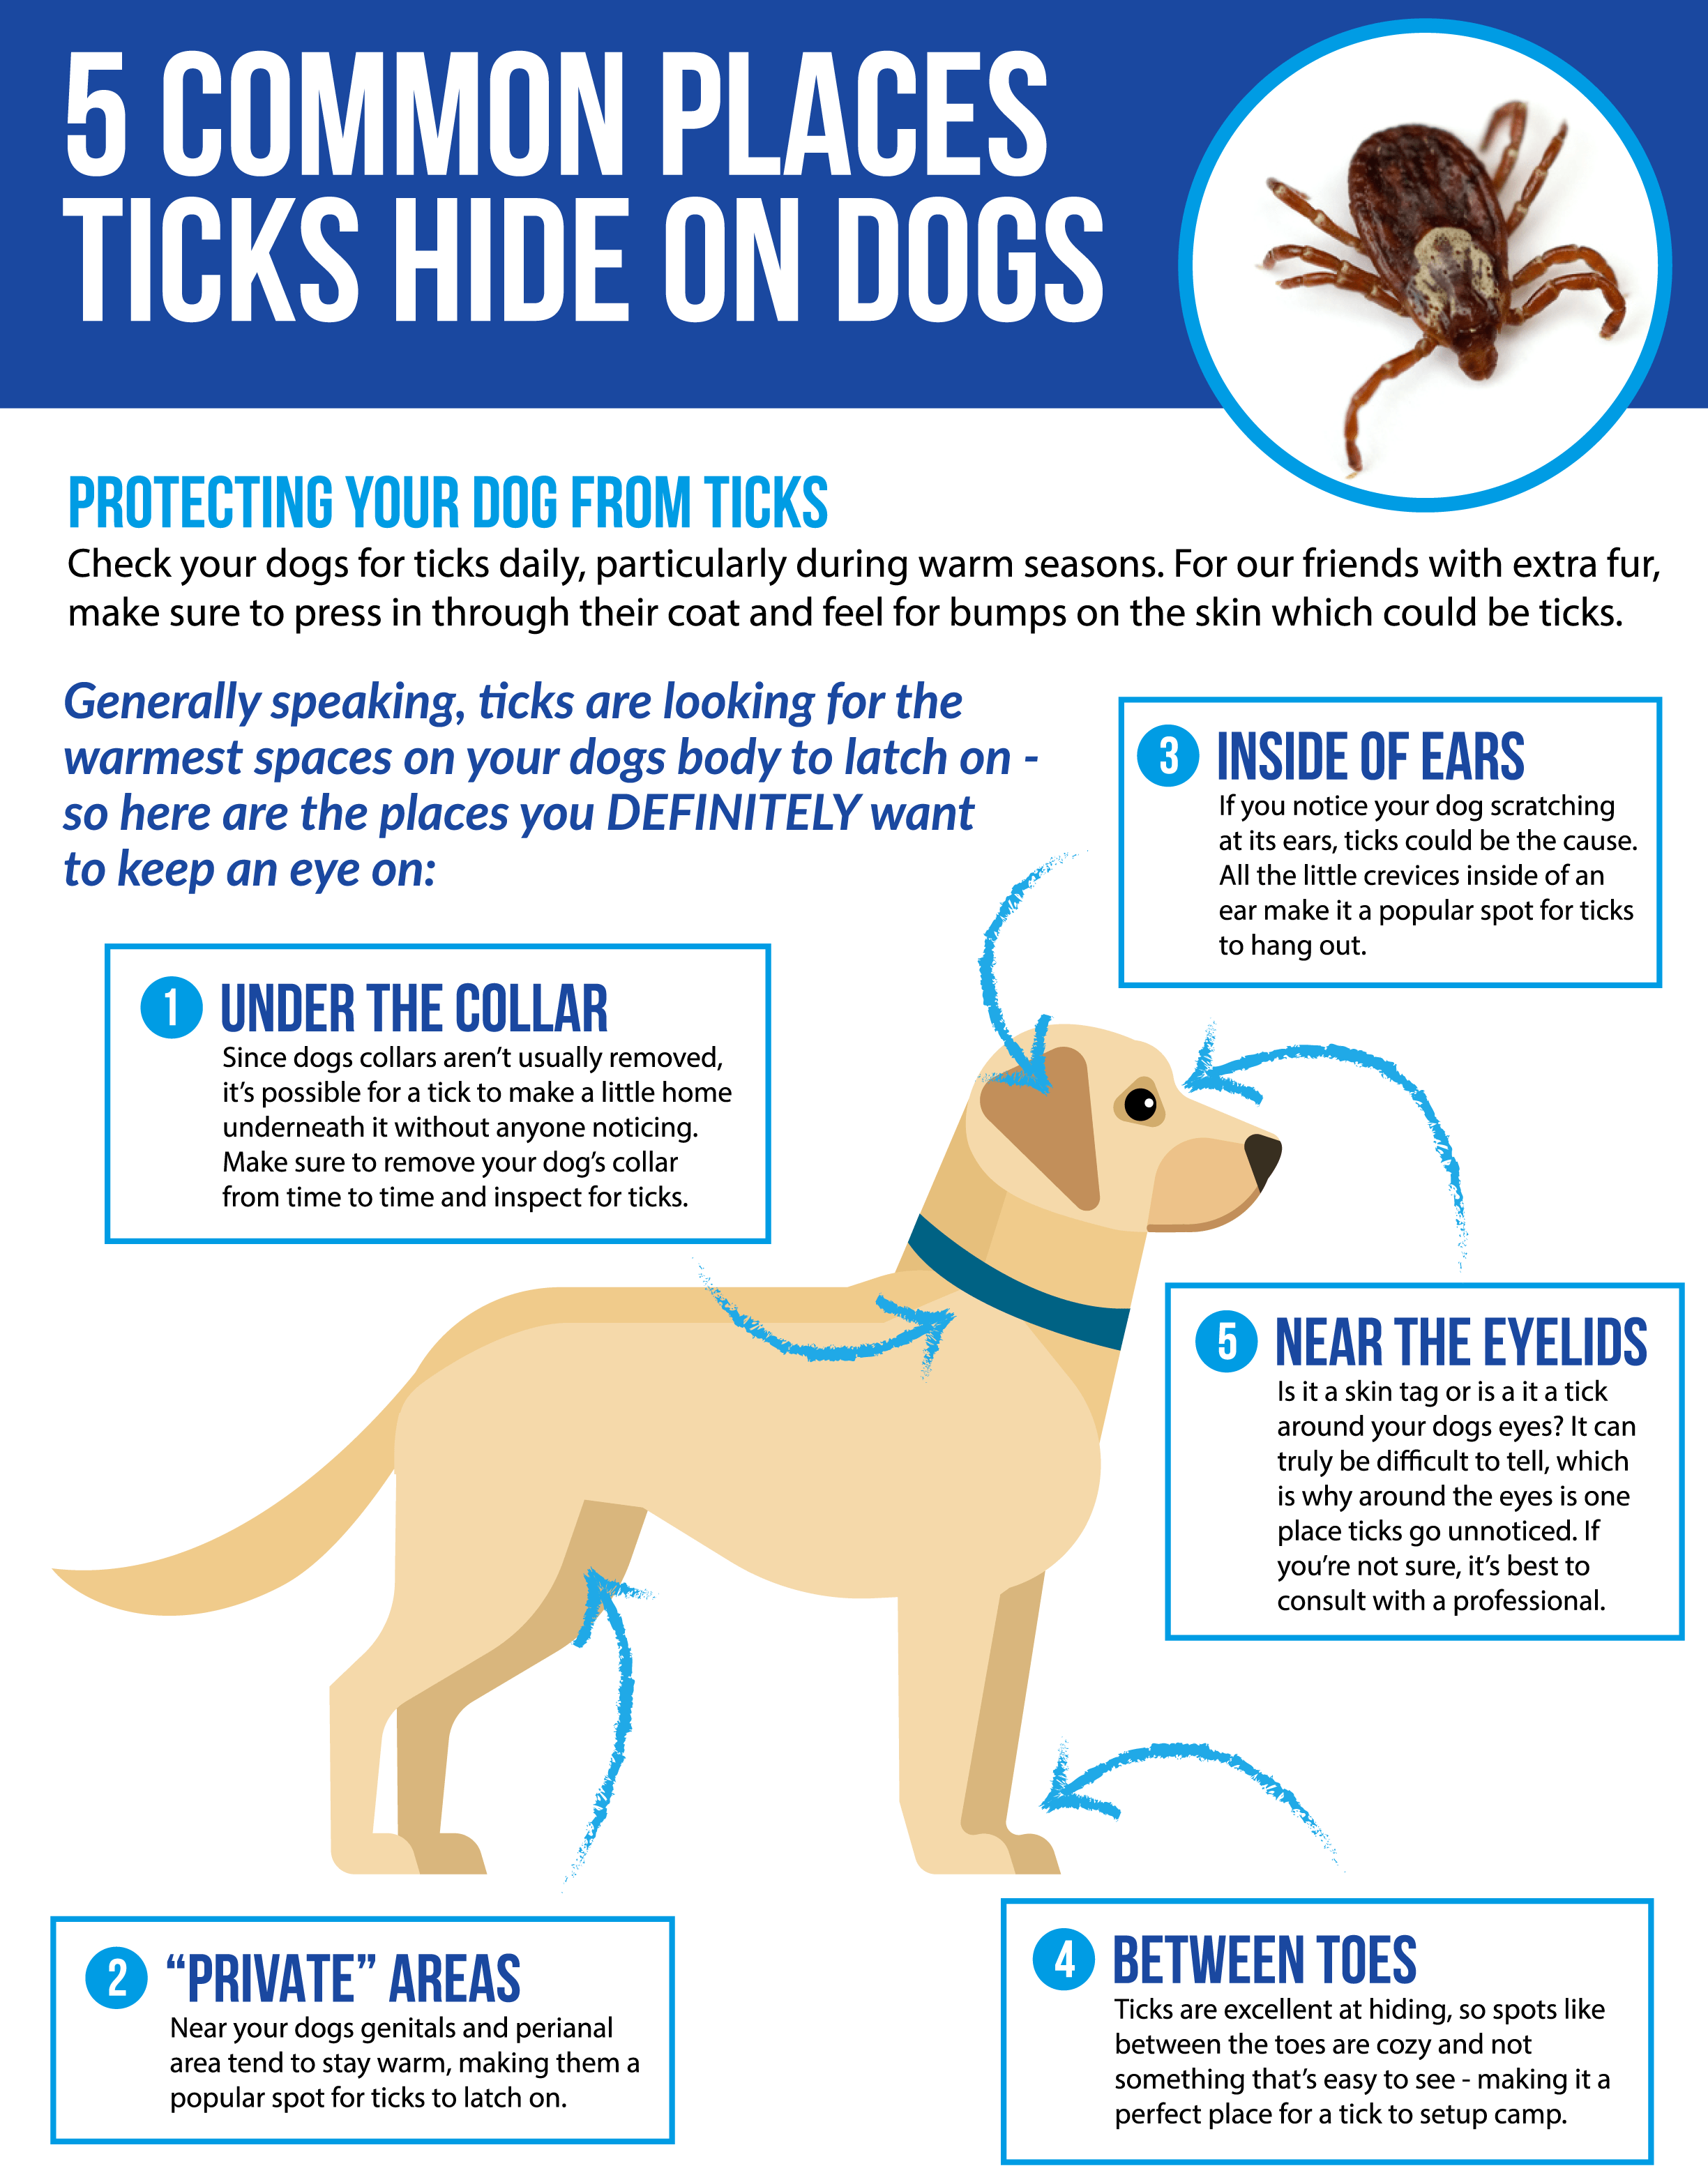 Does Your Dog Have Lyme Disease Lyme Disease In Dogs Is One Of The By Ahmed Abouleel Medium